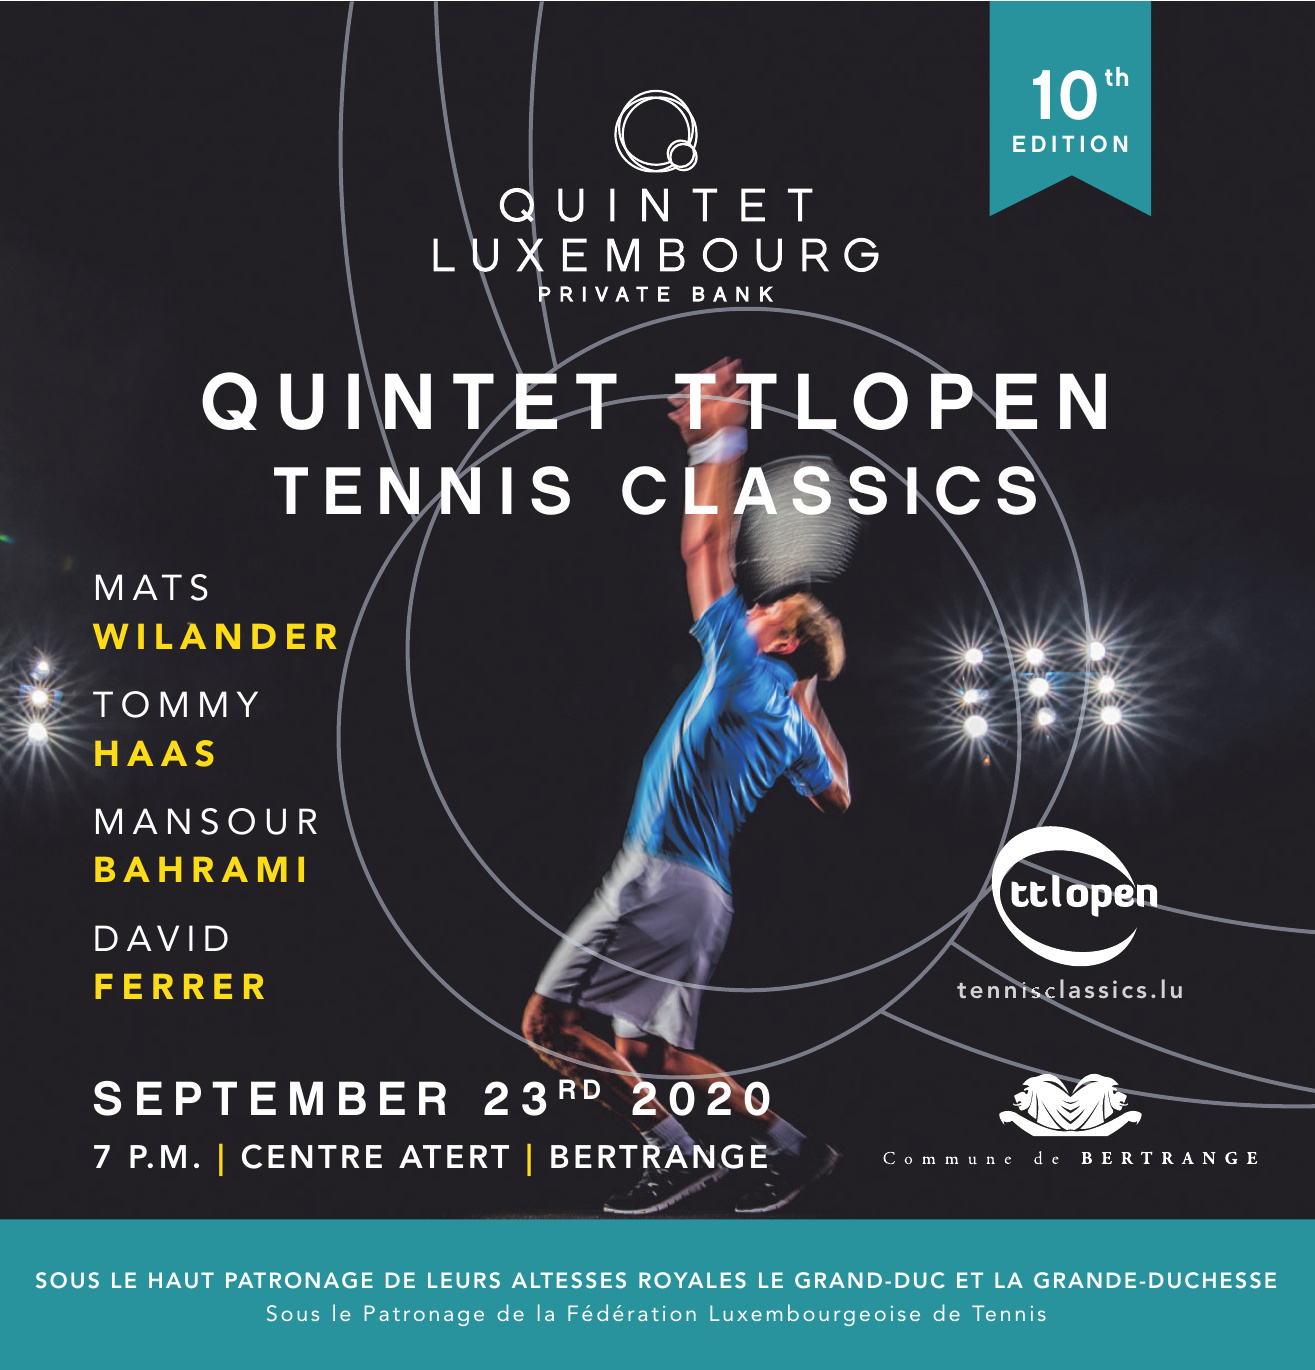 Quintet Luxembourg